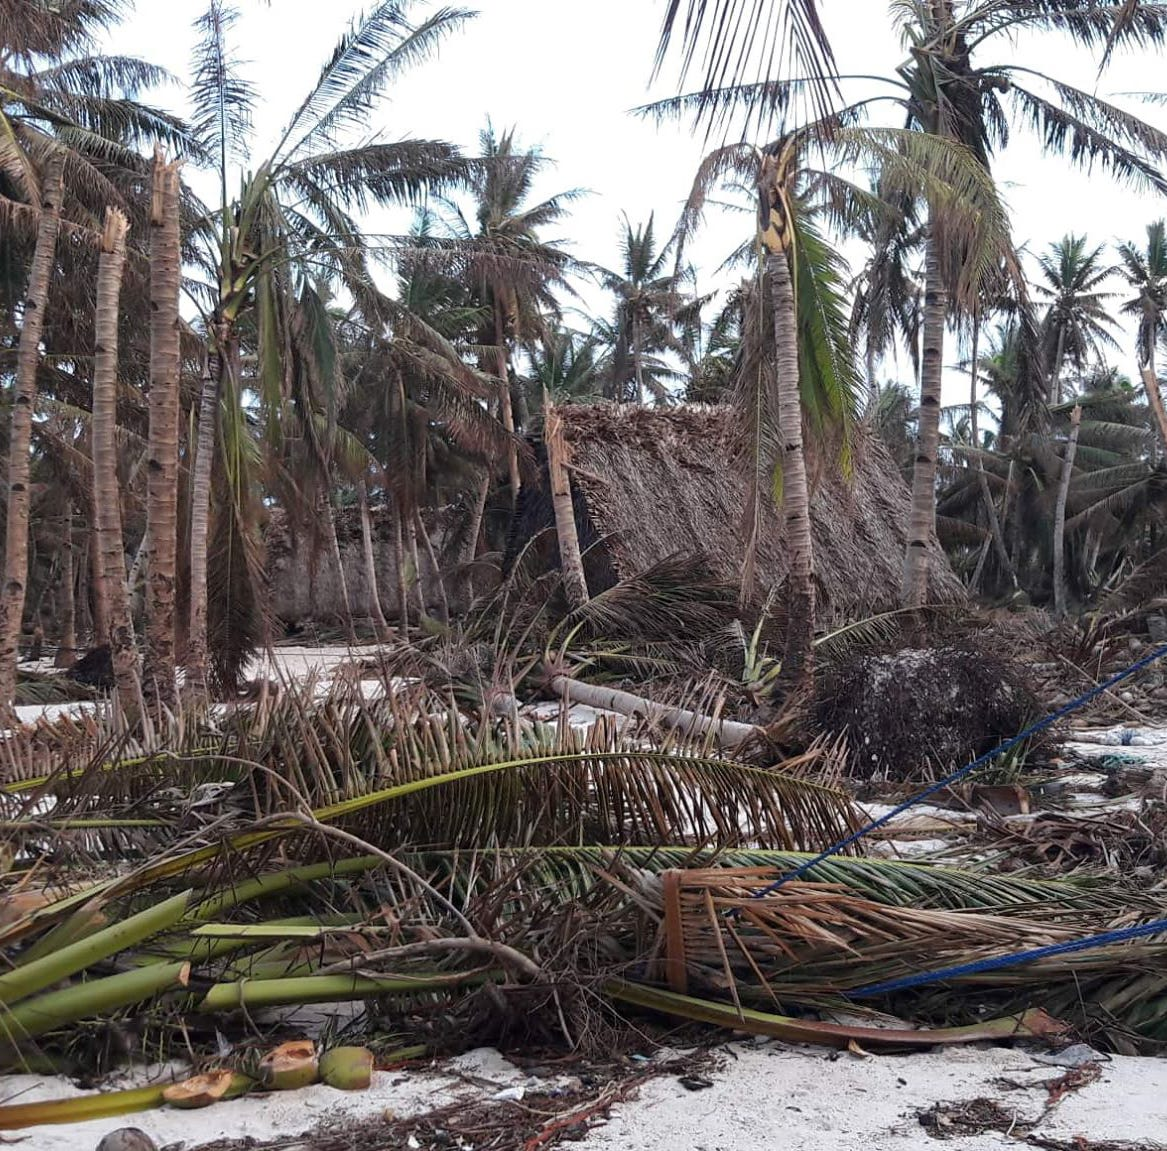 Houk, an outer island in Chuuk, still reeling after Typhoon Wutip